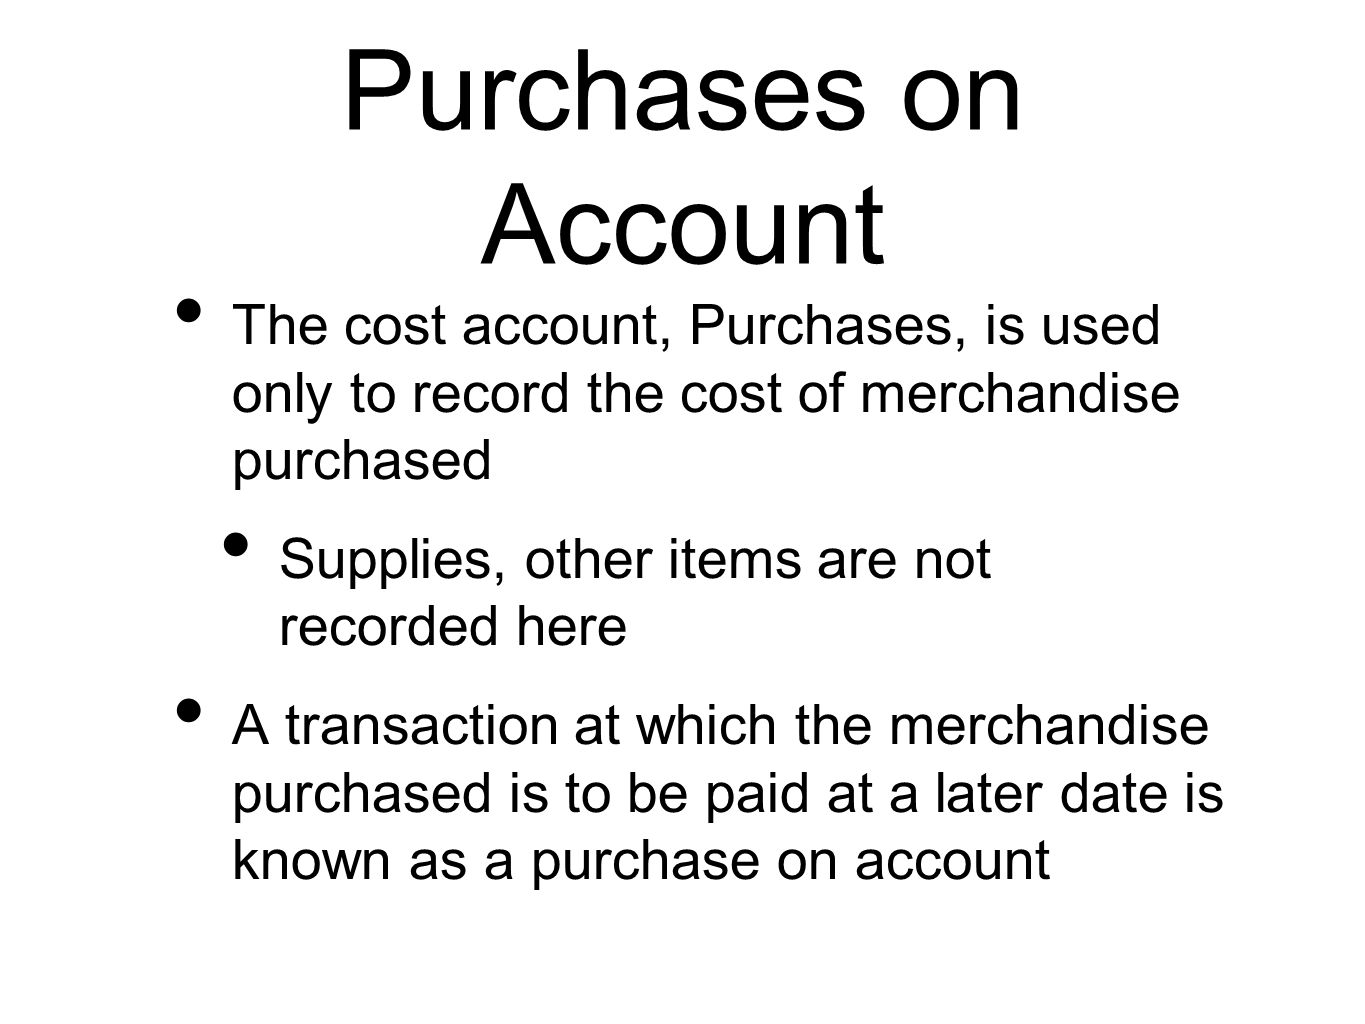 Purchases on Account The cost account, Purchases, is used only to record the cost of merchandise purchased.